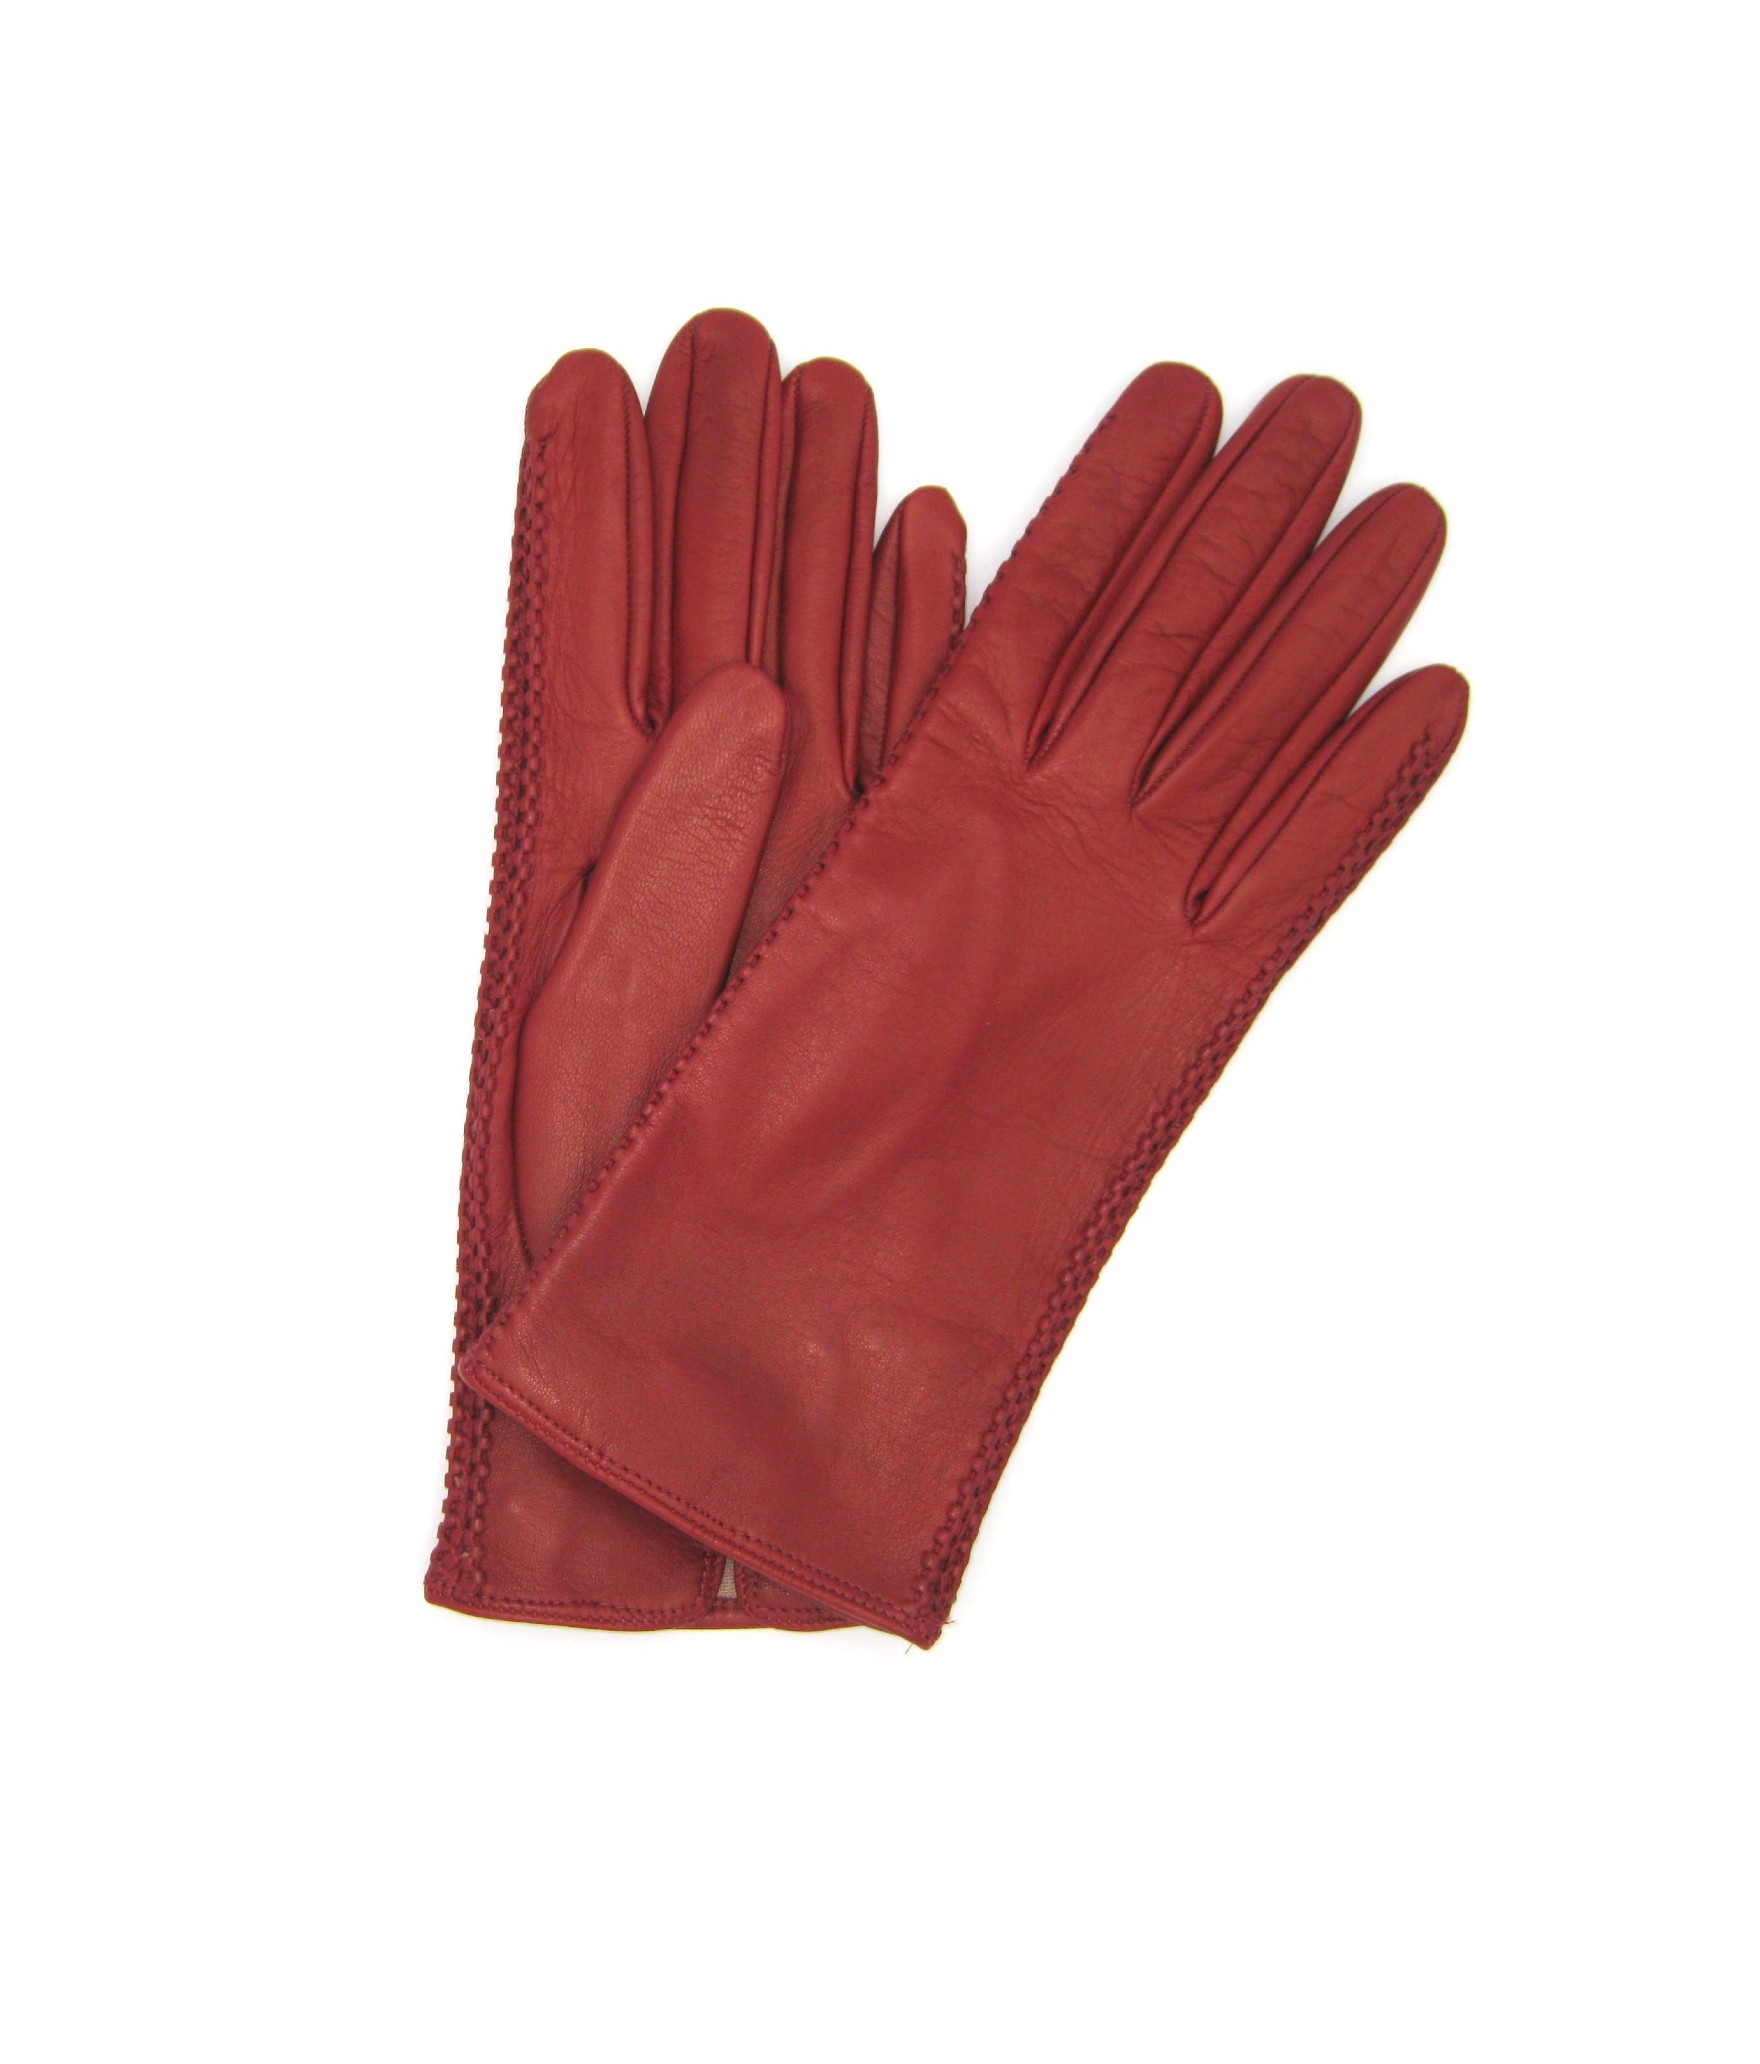 Nappa leather gloves 2bt silk lined with side tracks Dark Red